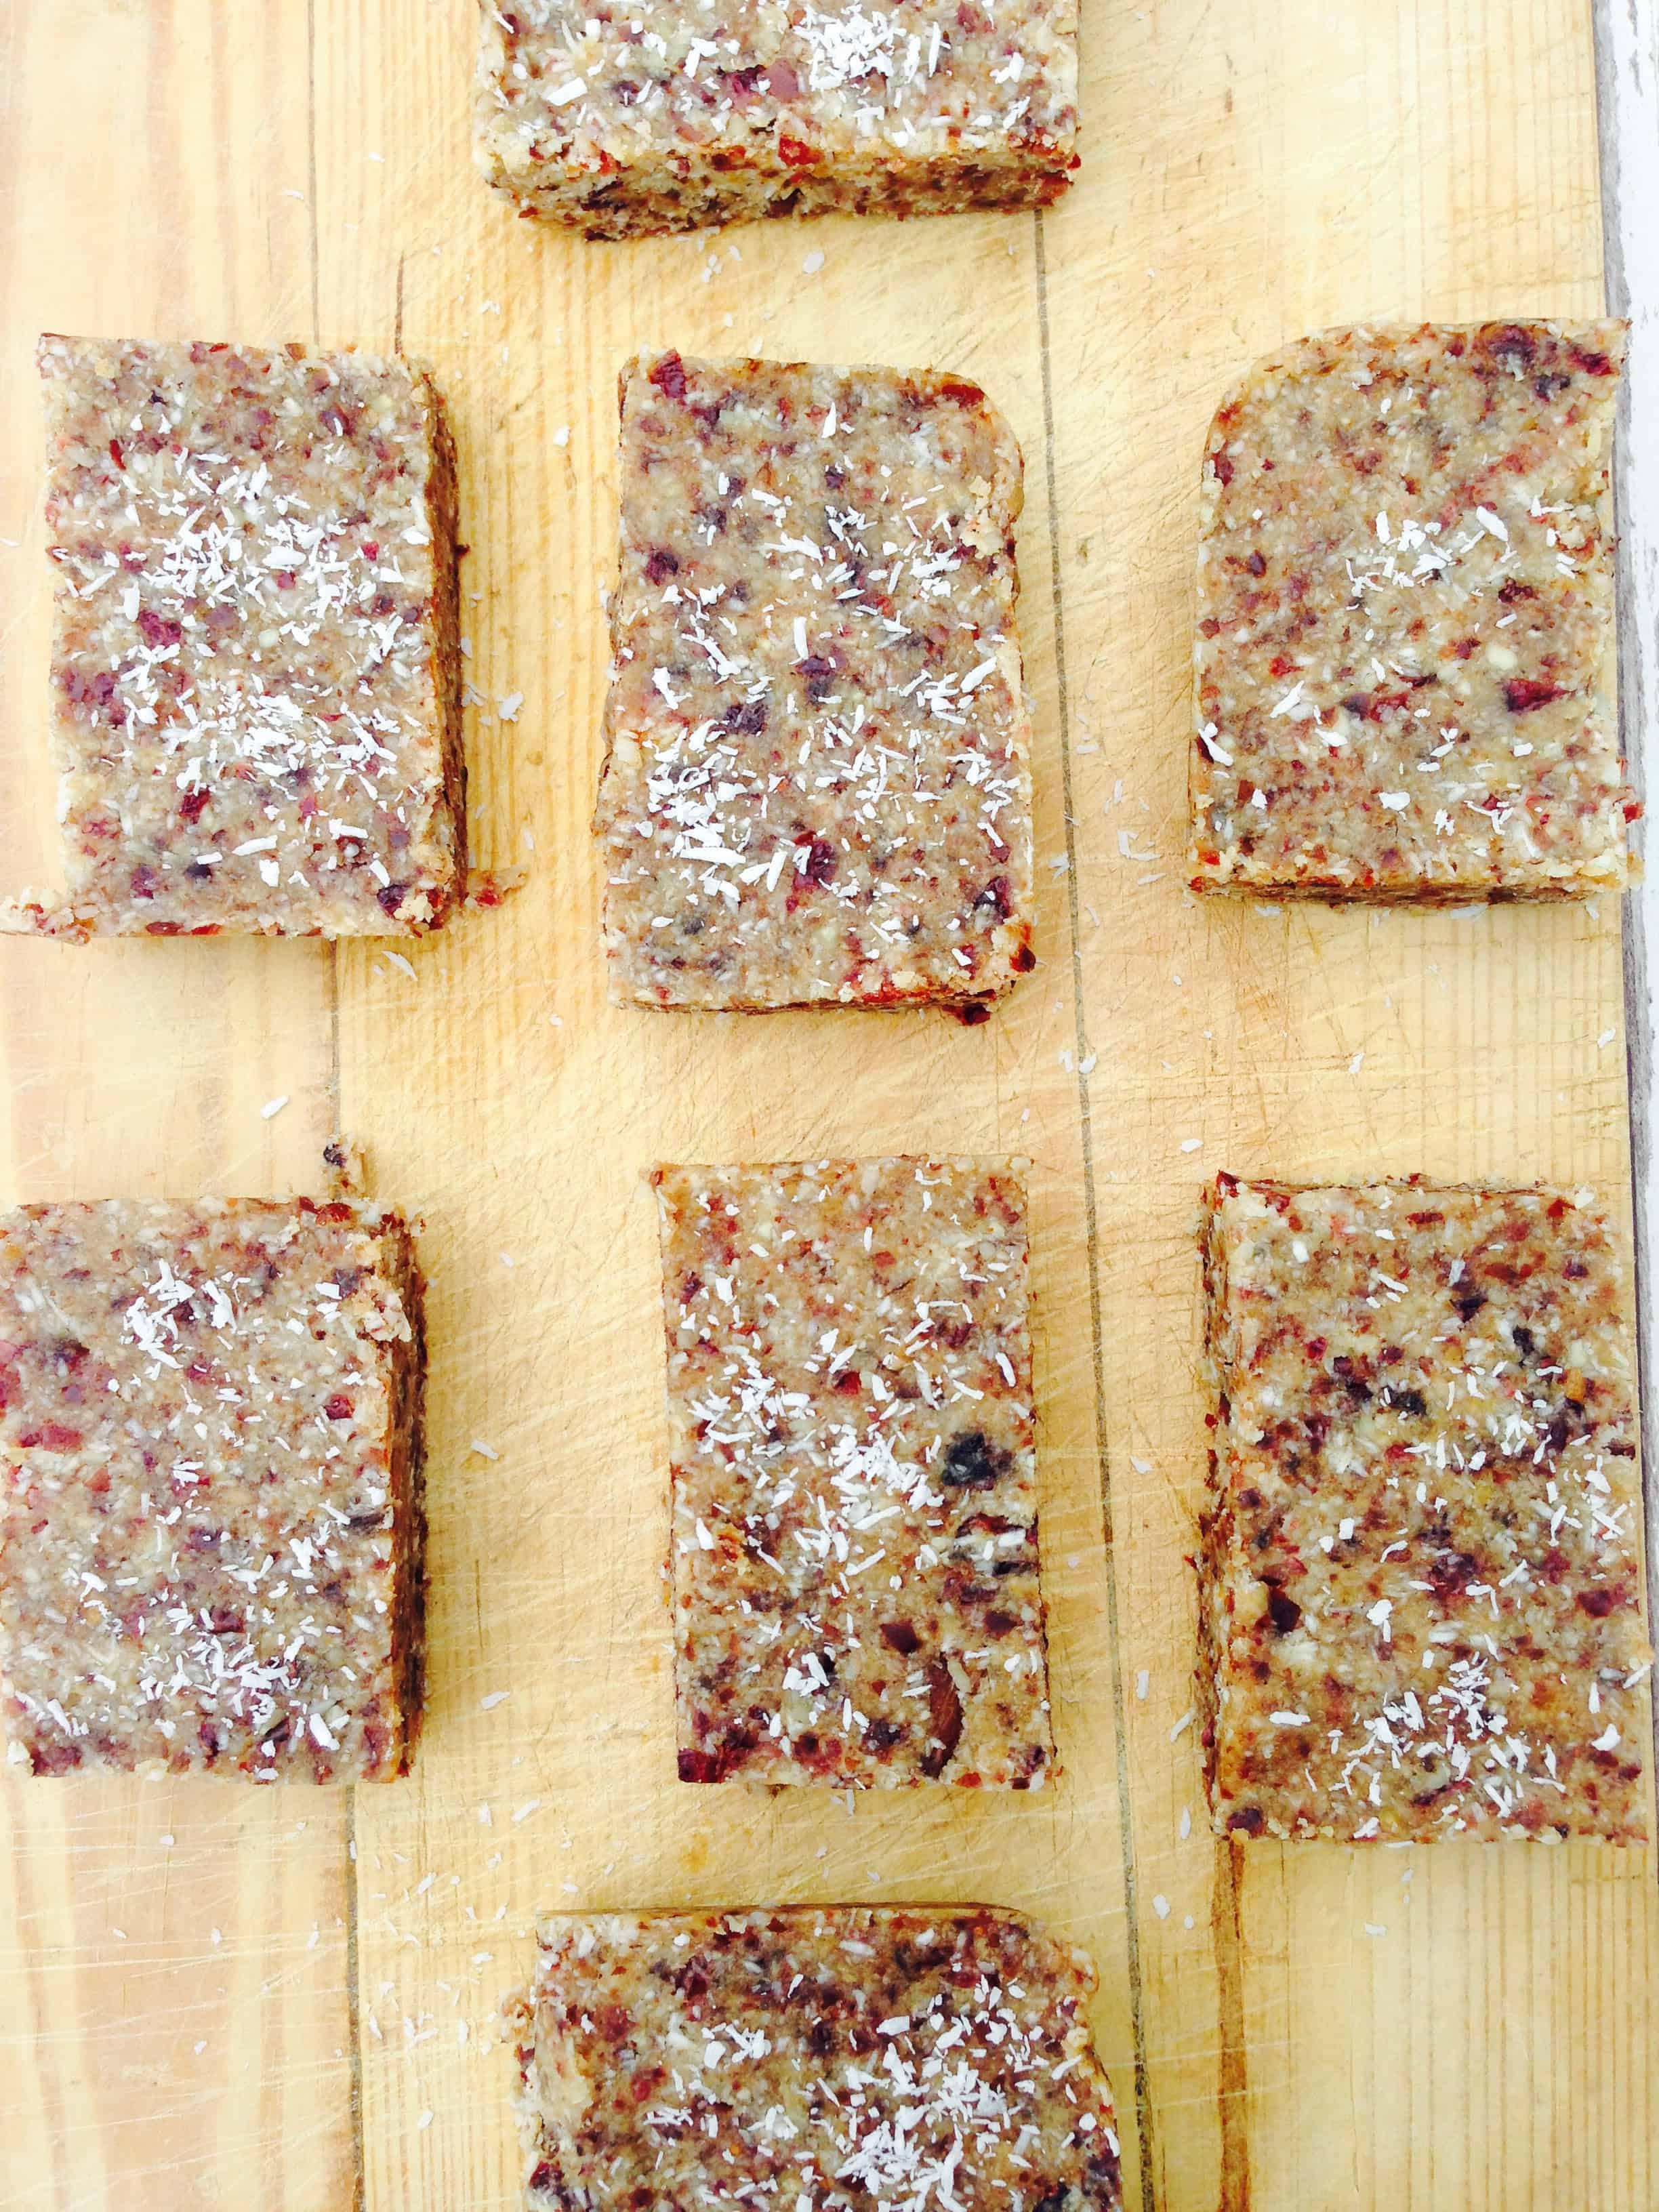 Simple and clean granola bars recipe made with four ingredients and a good blender/food processor. No baking, no fuss, no dairy, no gluten, no added sugar, just simple, wholesome ingredients. #vegan #vegetarian #healthygranola #dairyfree #easyrecipes